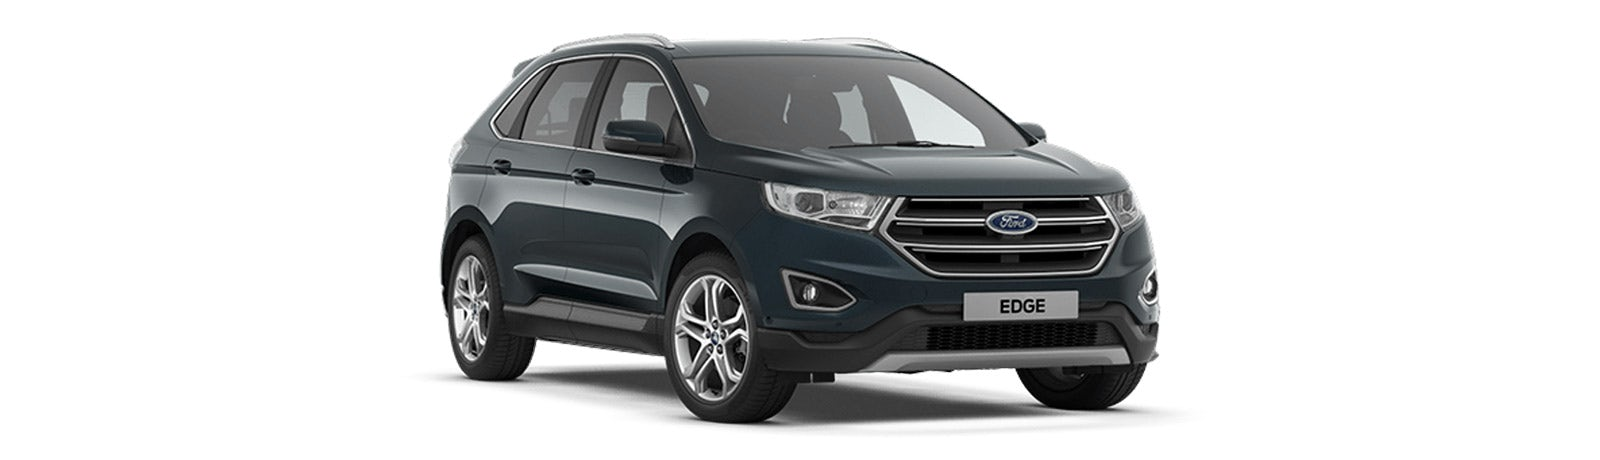 Ford Edge Suv Colours Guide And Prices Carwow